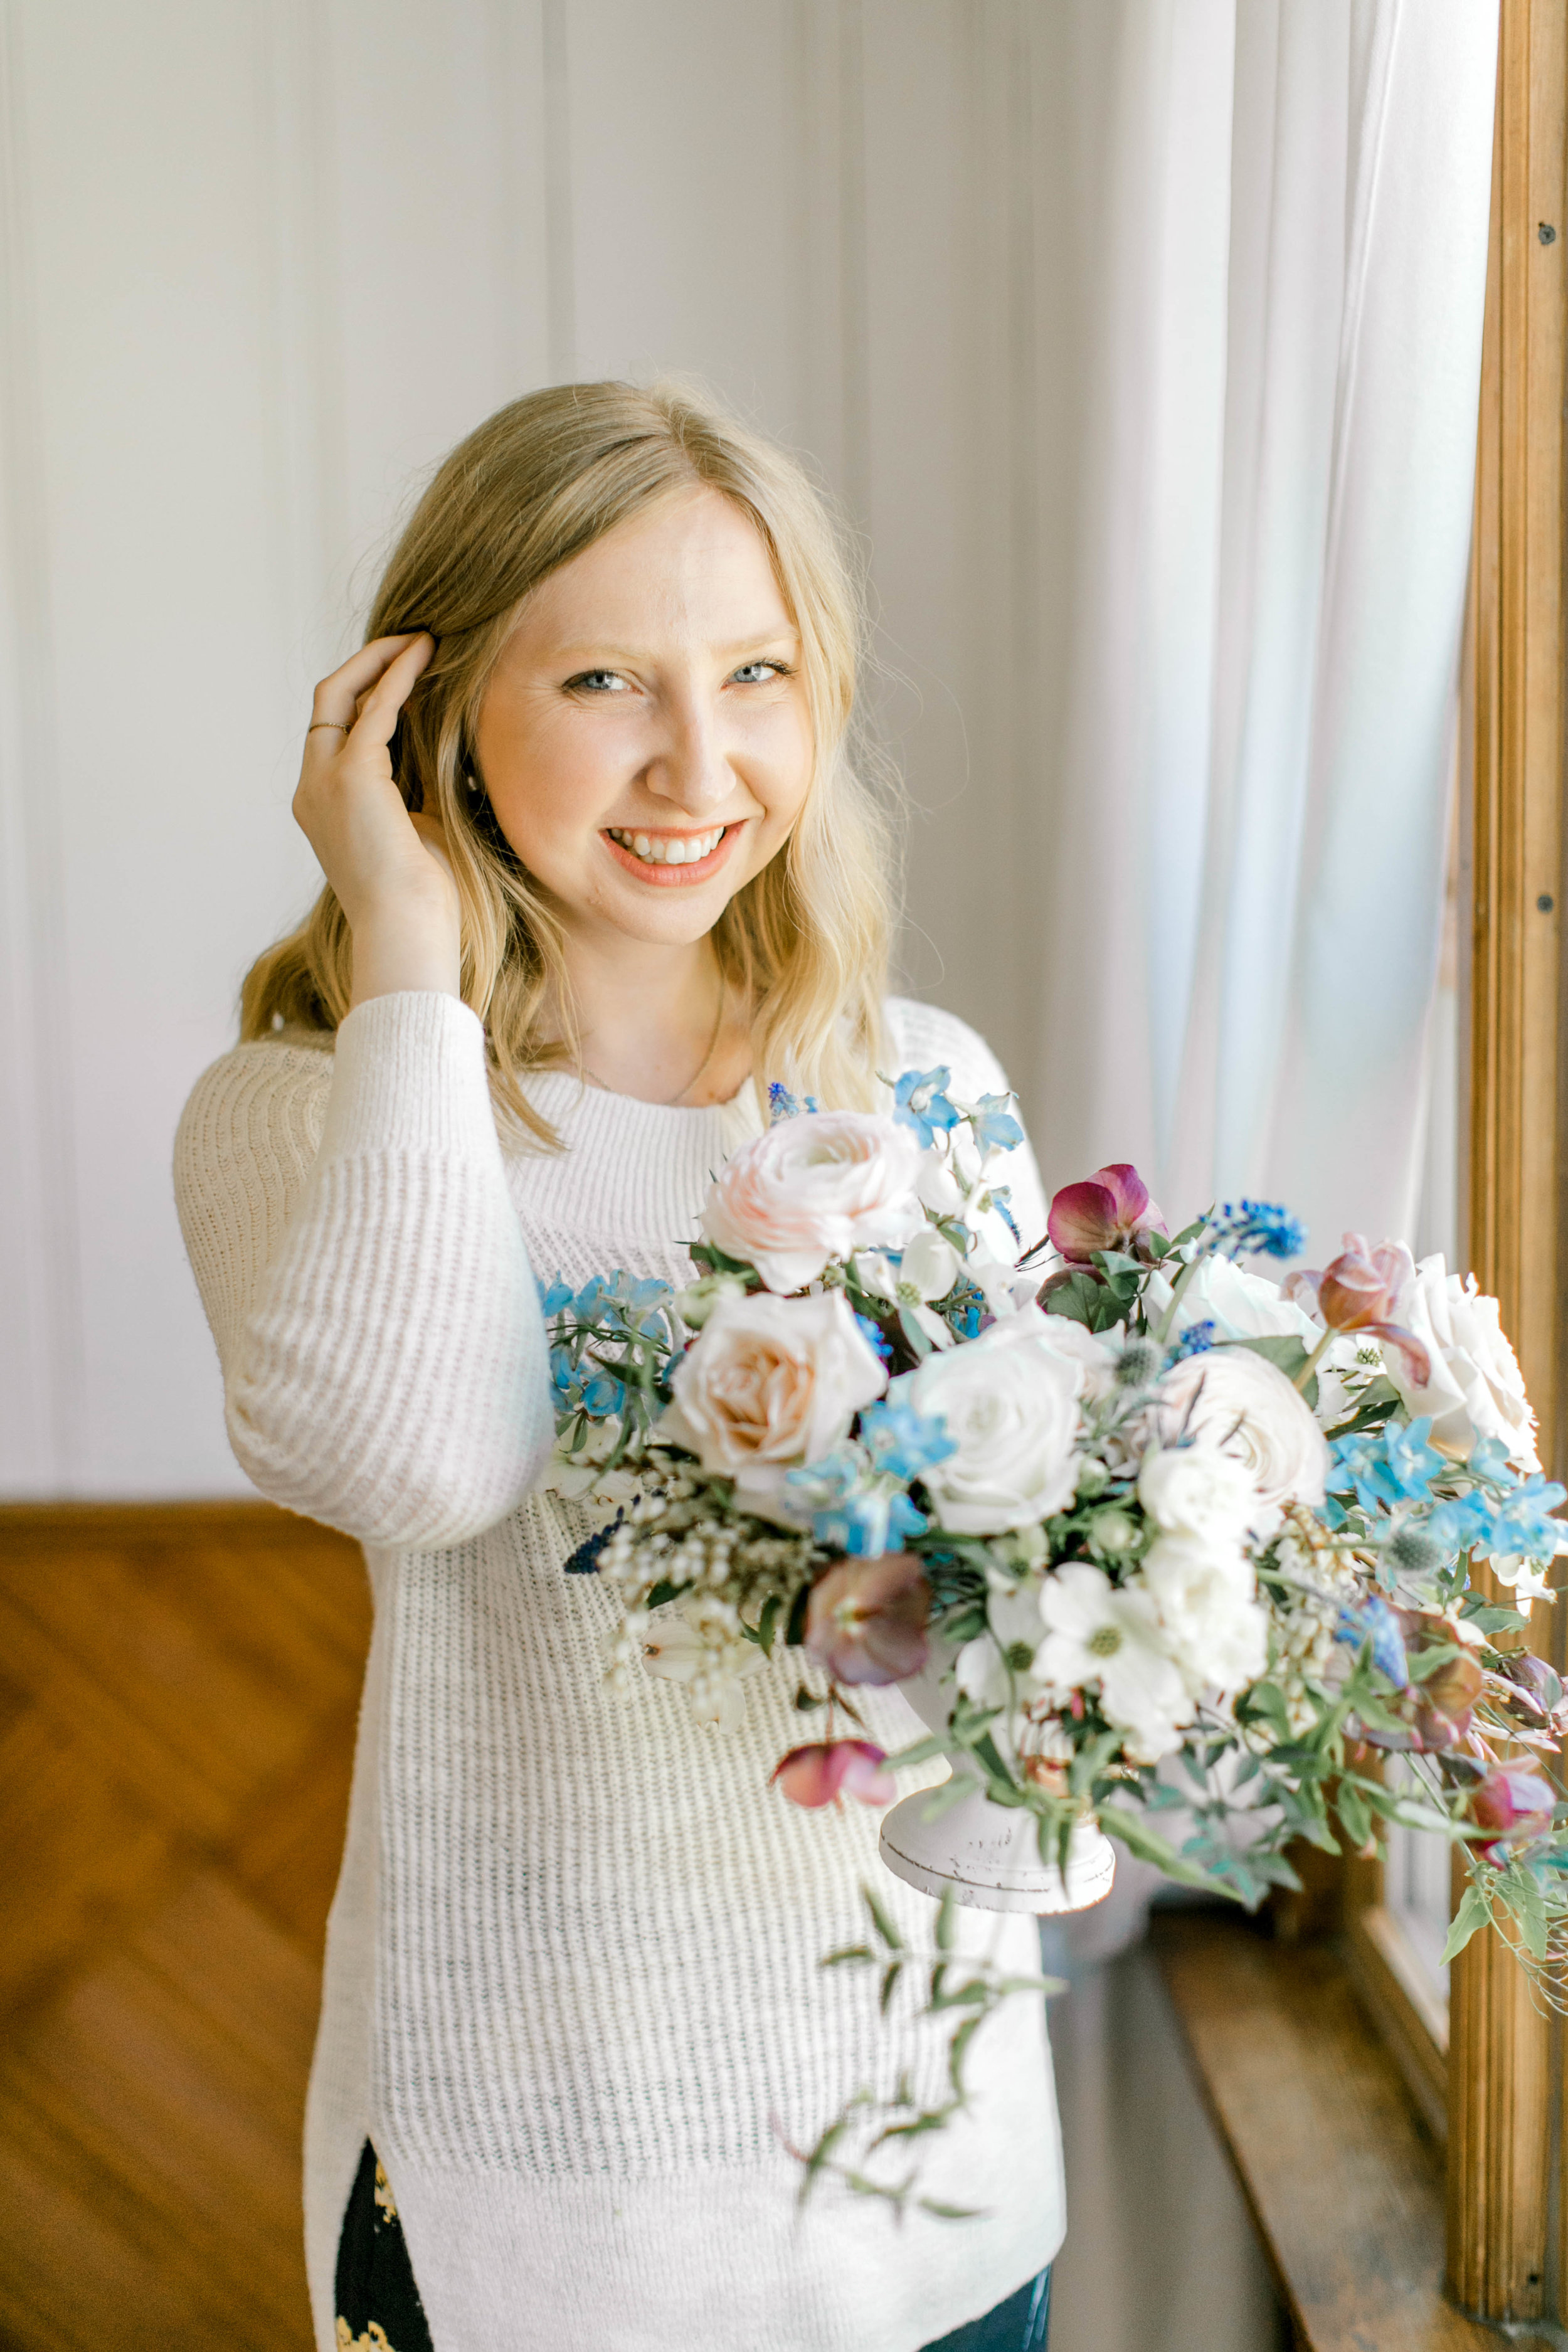 Courtney Inghram Virginia Wedding Florist Business and Floral Design Workshop